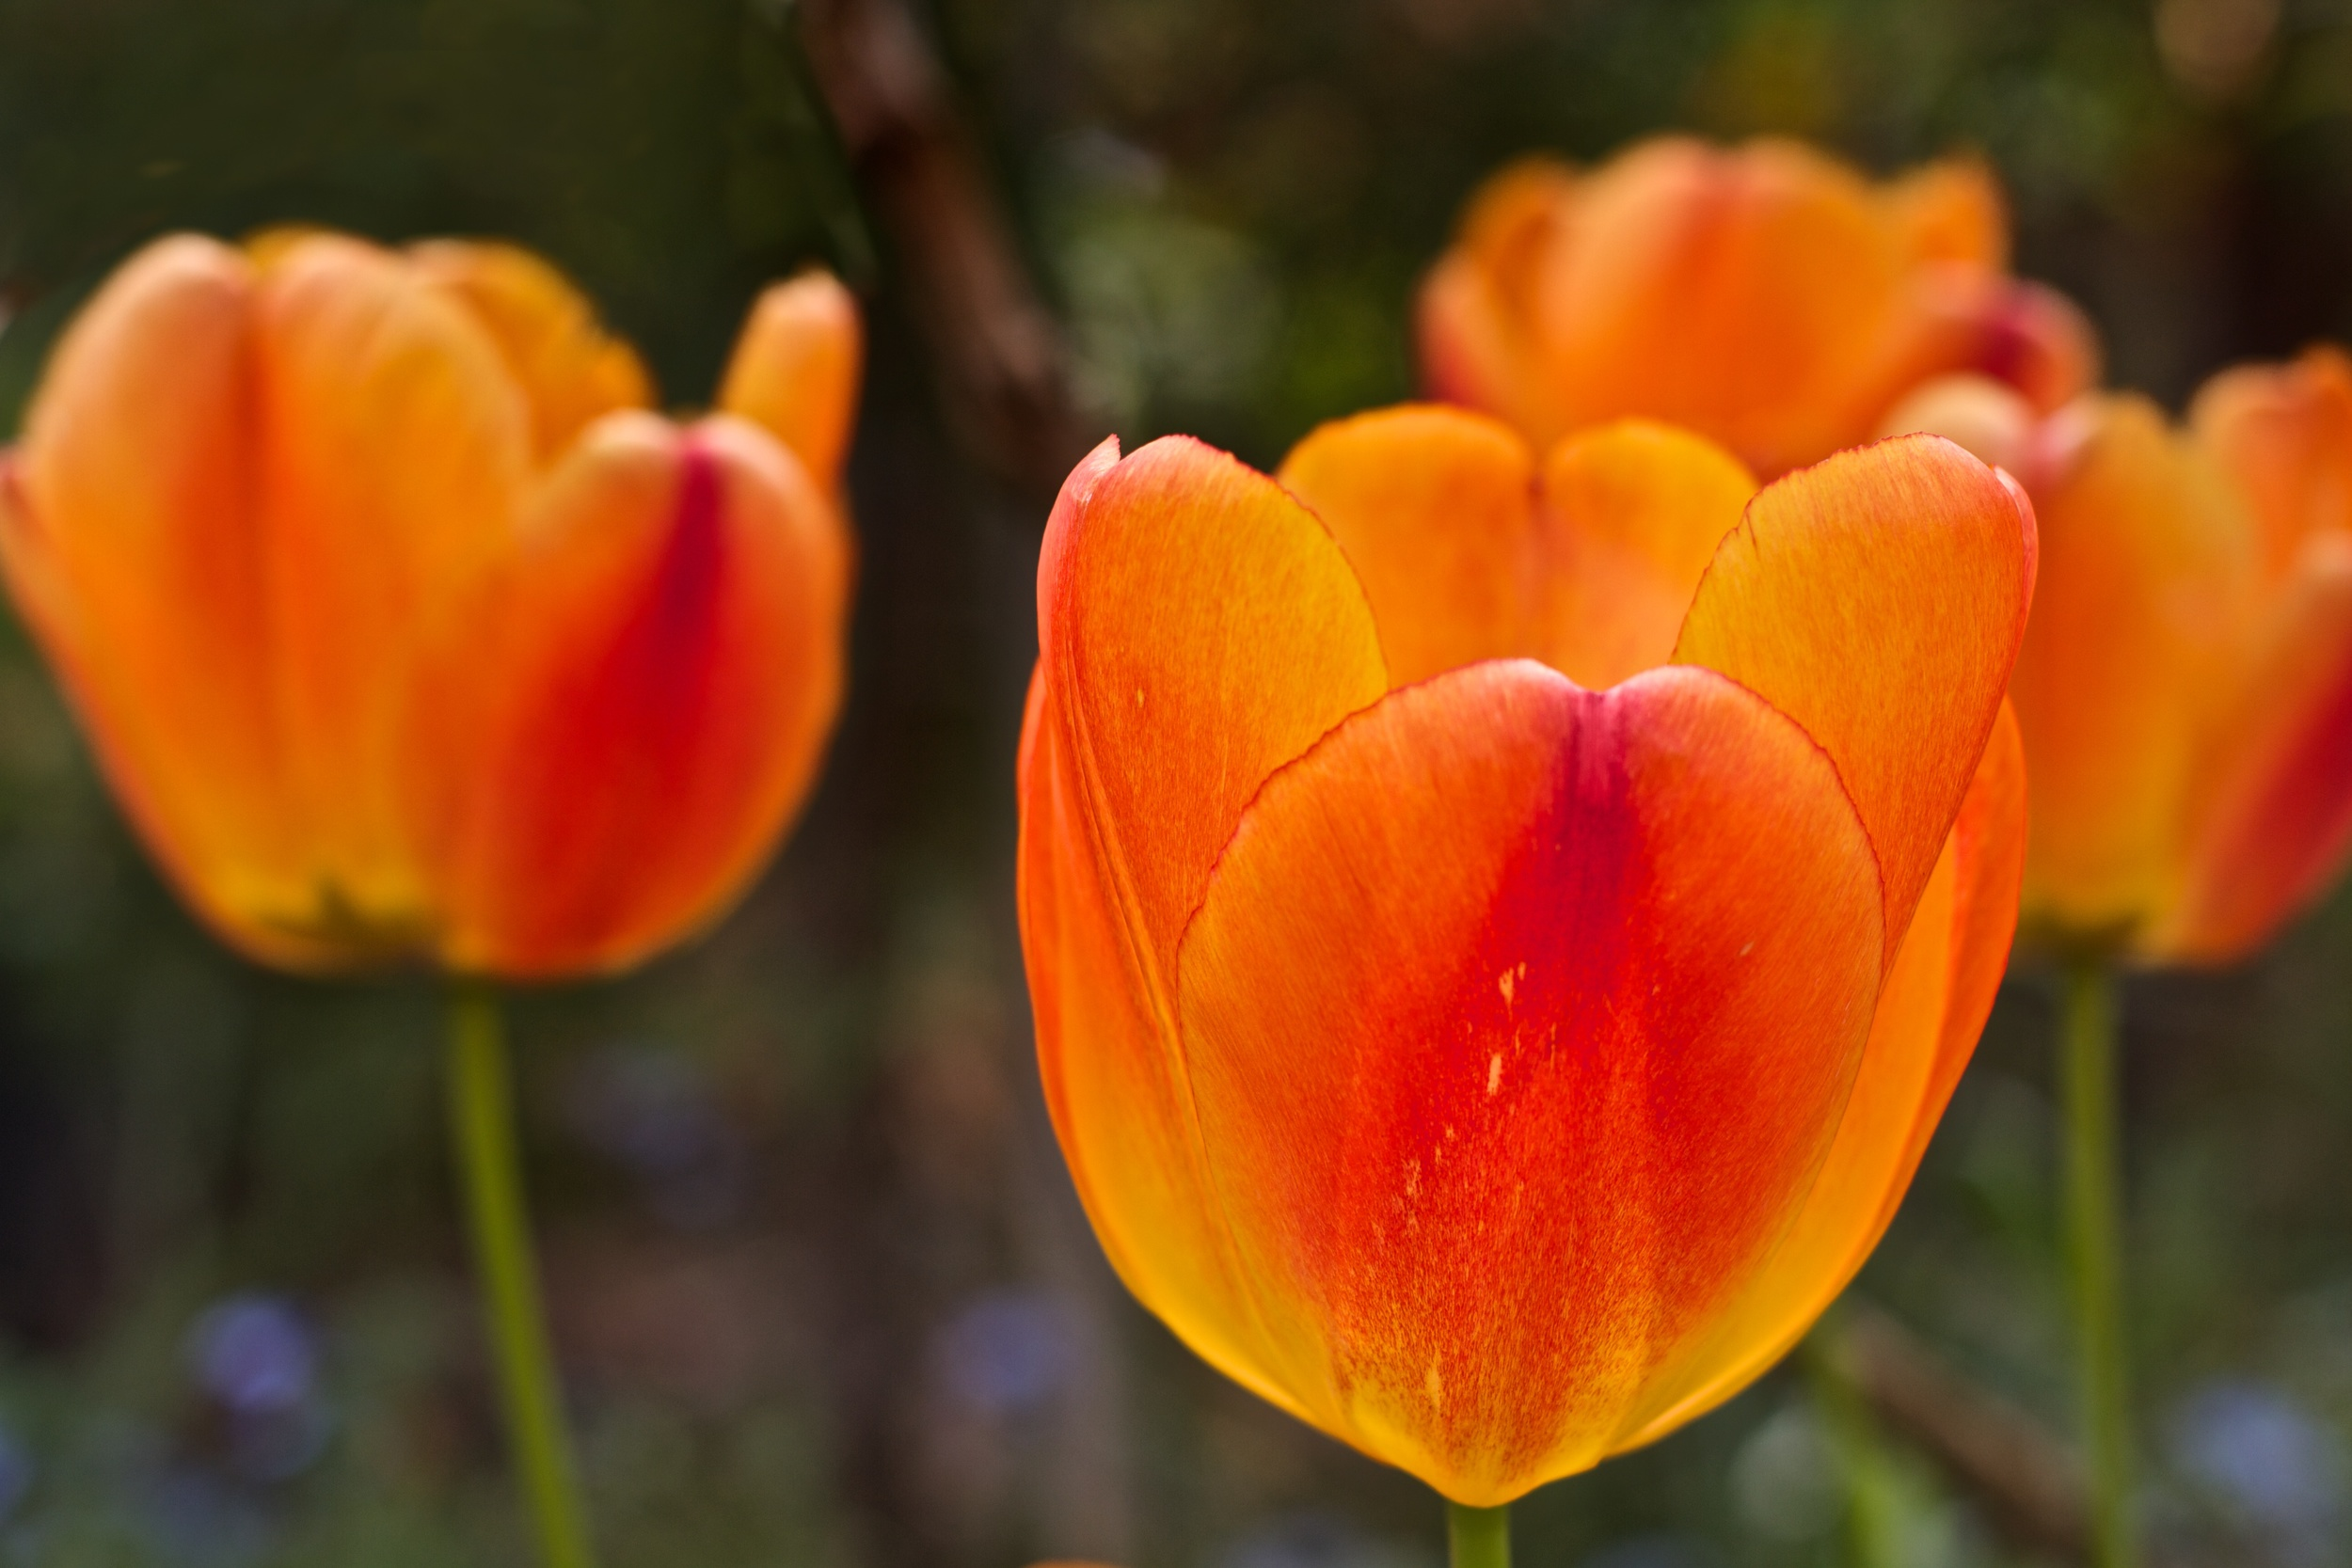 Brilliant yellow-orange tulips stand out against a dark background.  Canon EOS 7D EF 50mm at f/3.5 1/400 ISO 100